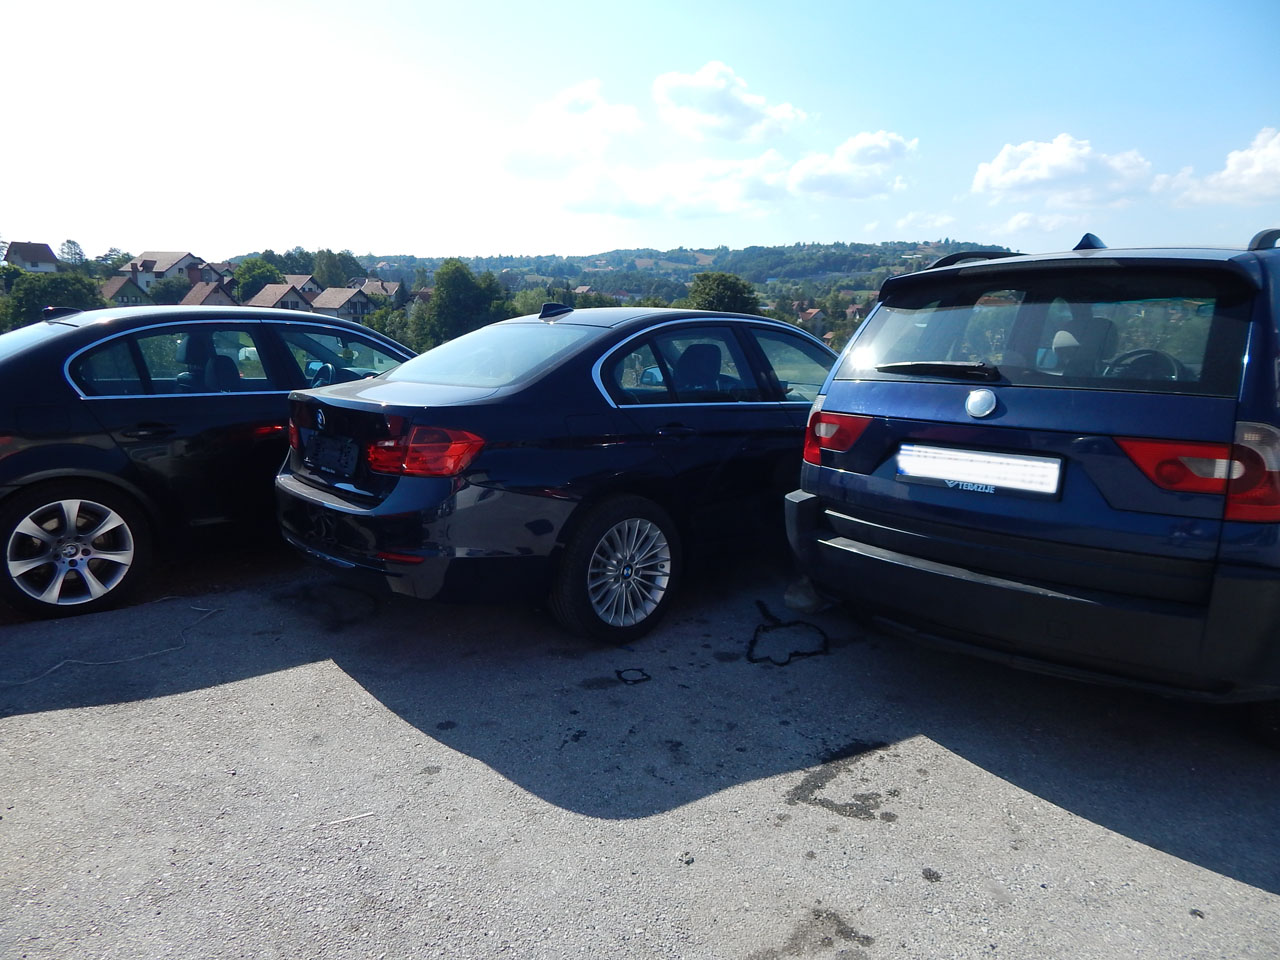 CAR SERVICE BMW RADOJEVIC Auto parts Uzice - Photo 2